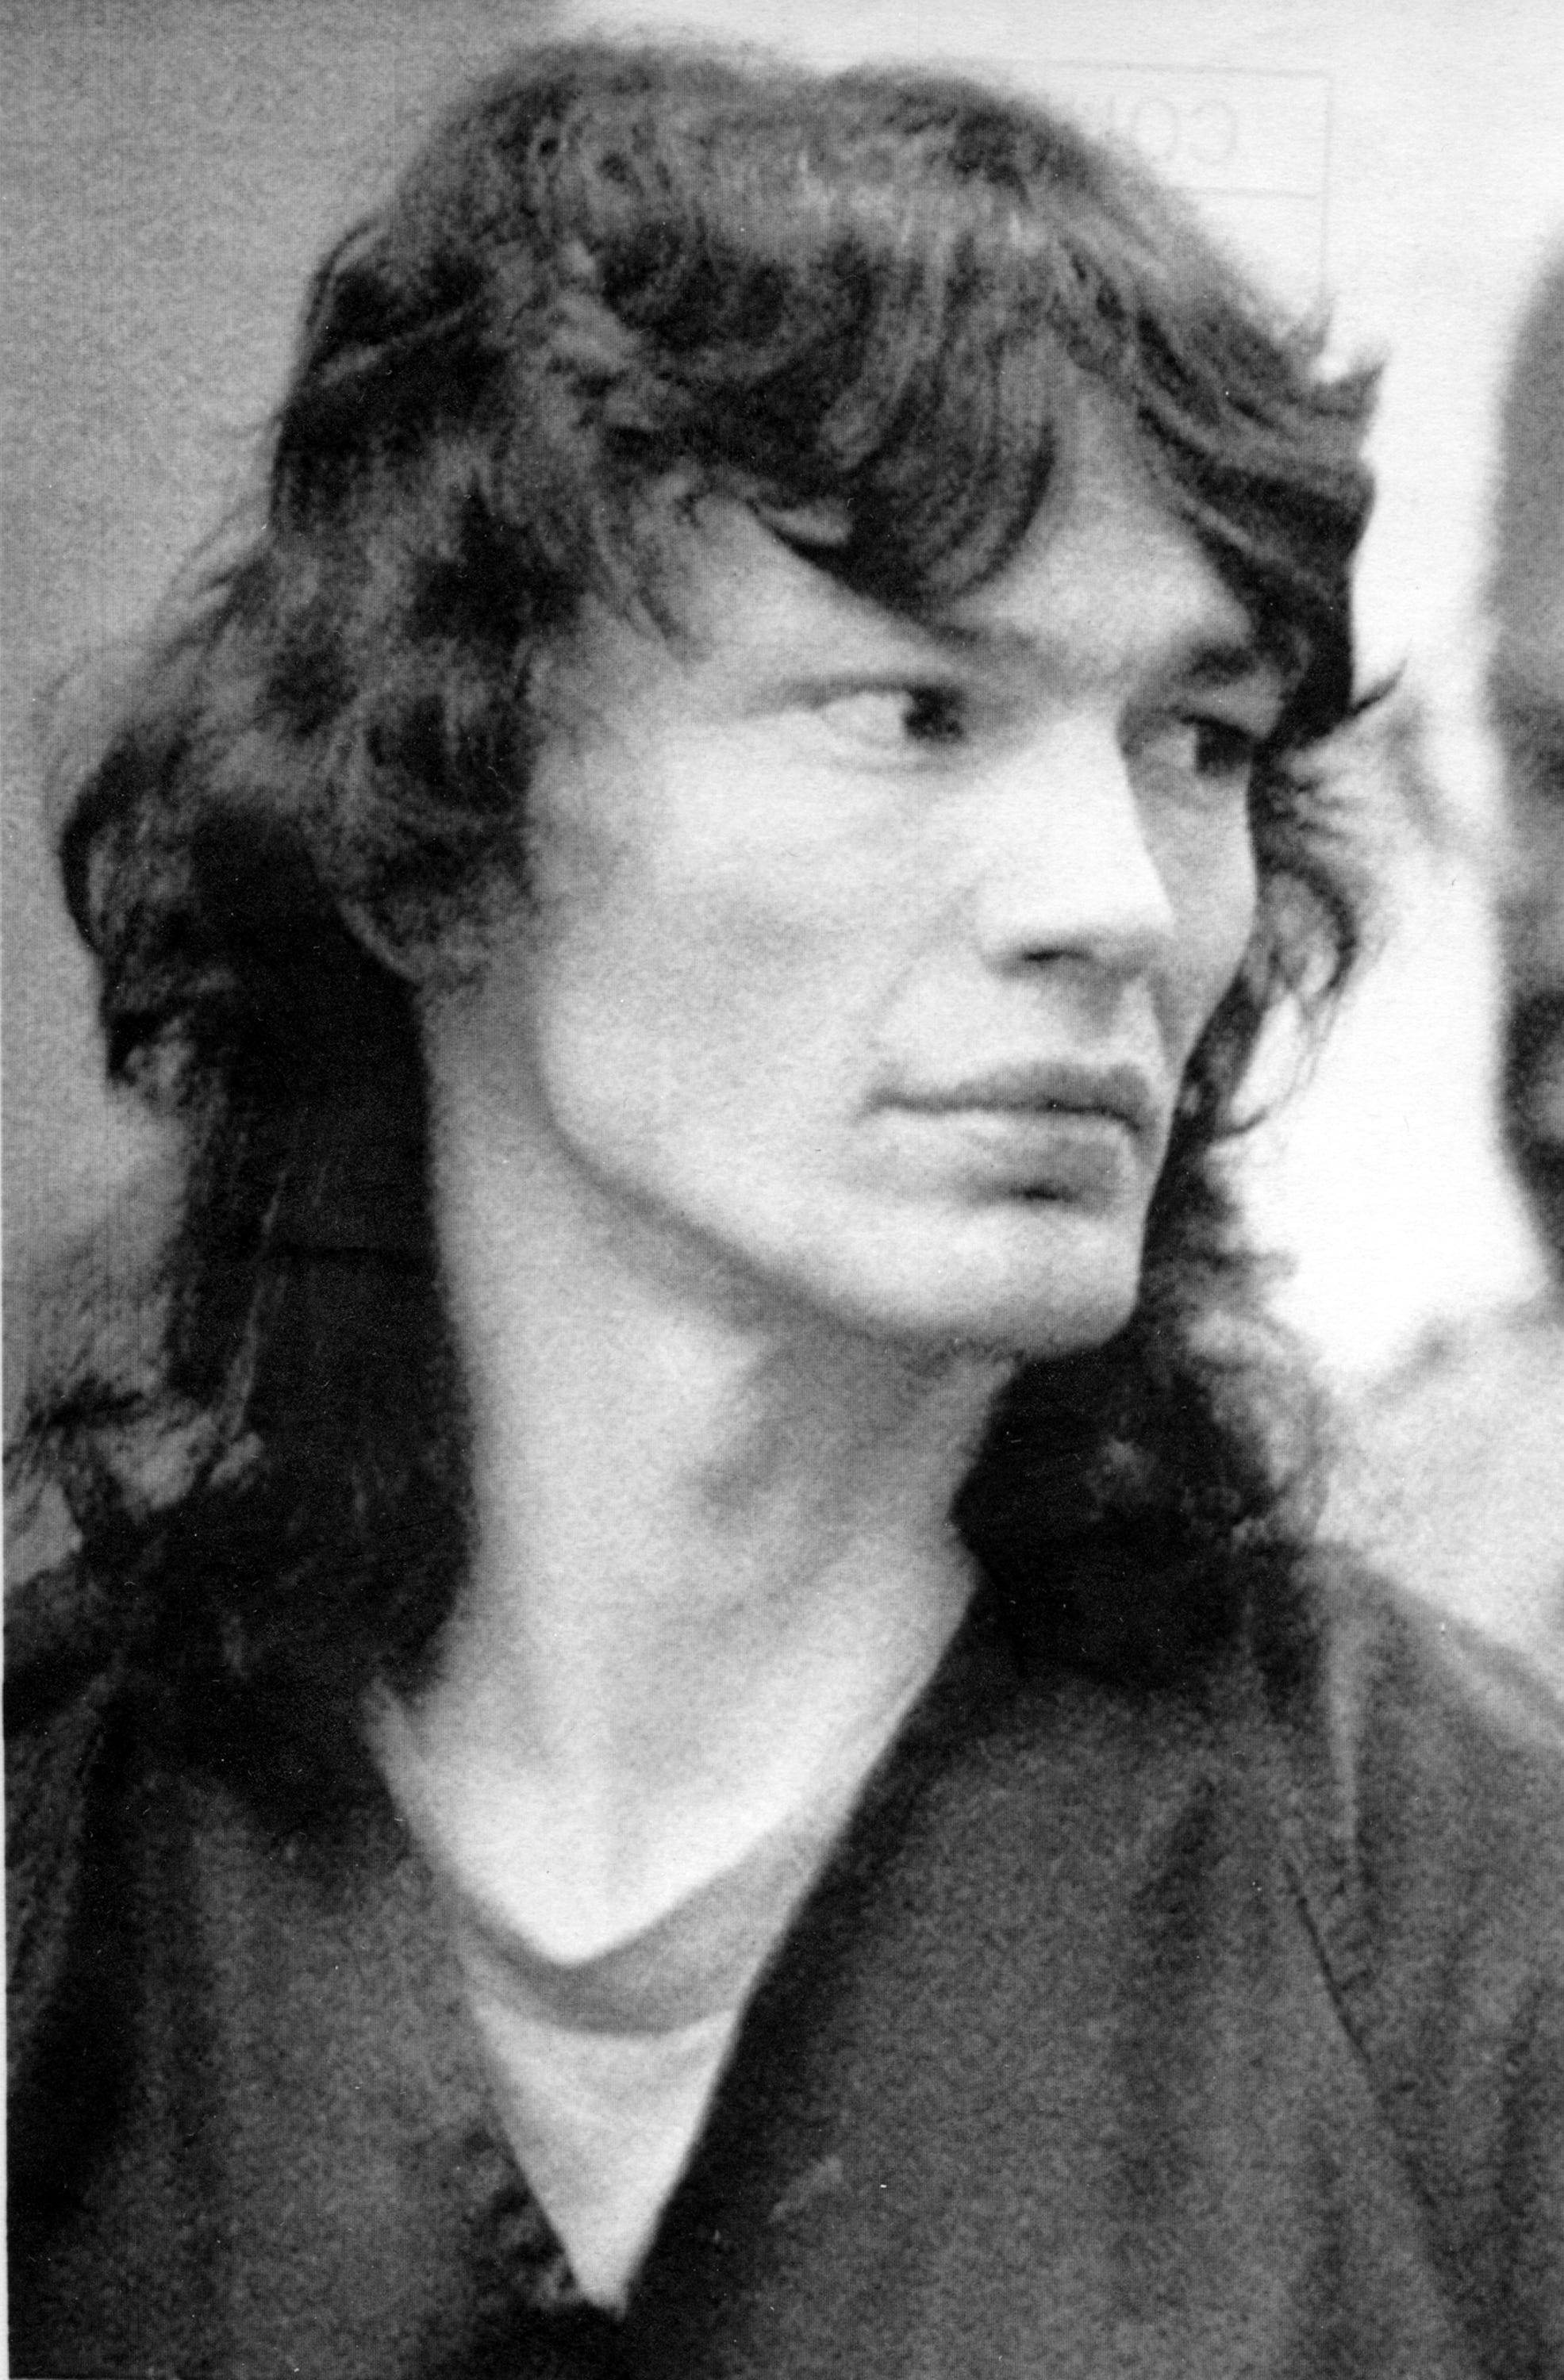 Ahs 1984 Richard Ramirez The Real Life Serial Killer Behind The Show